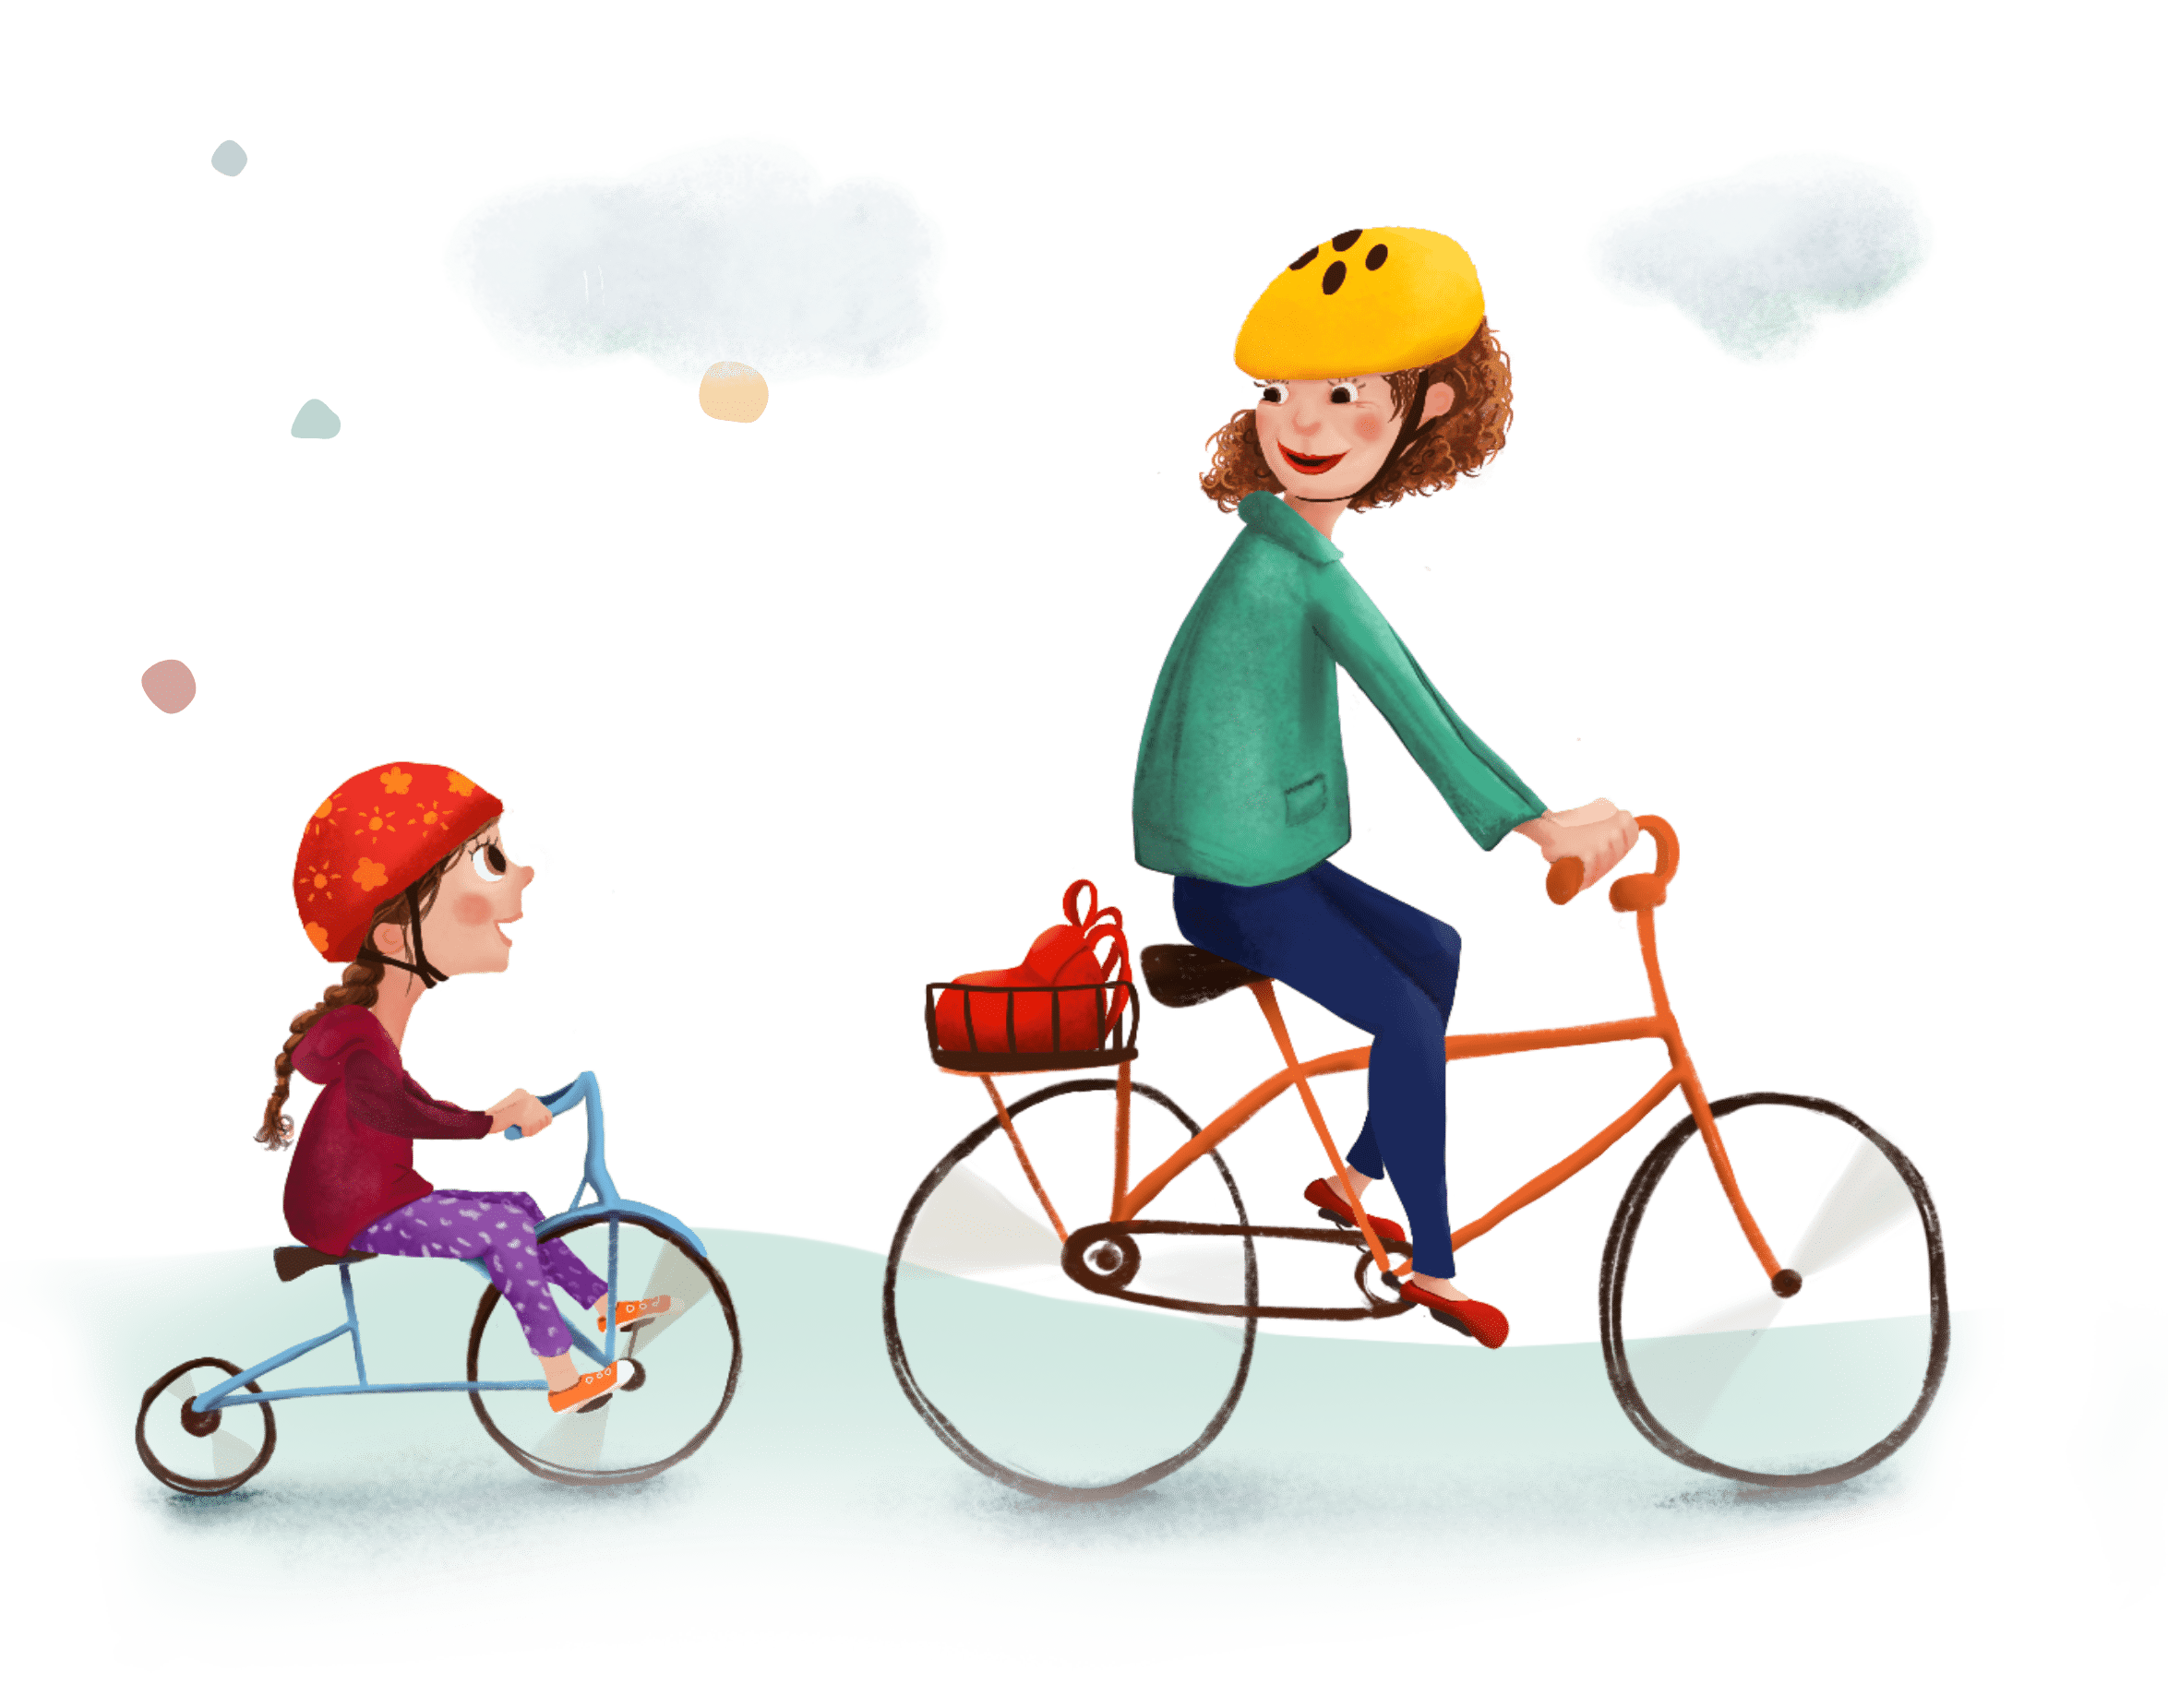 Nanny on bicycle